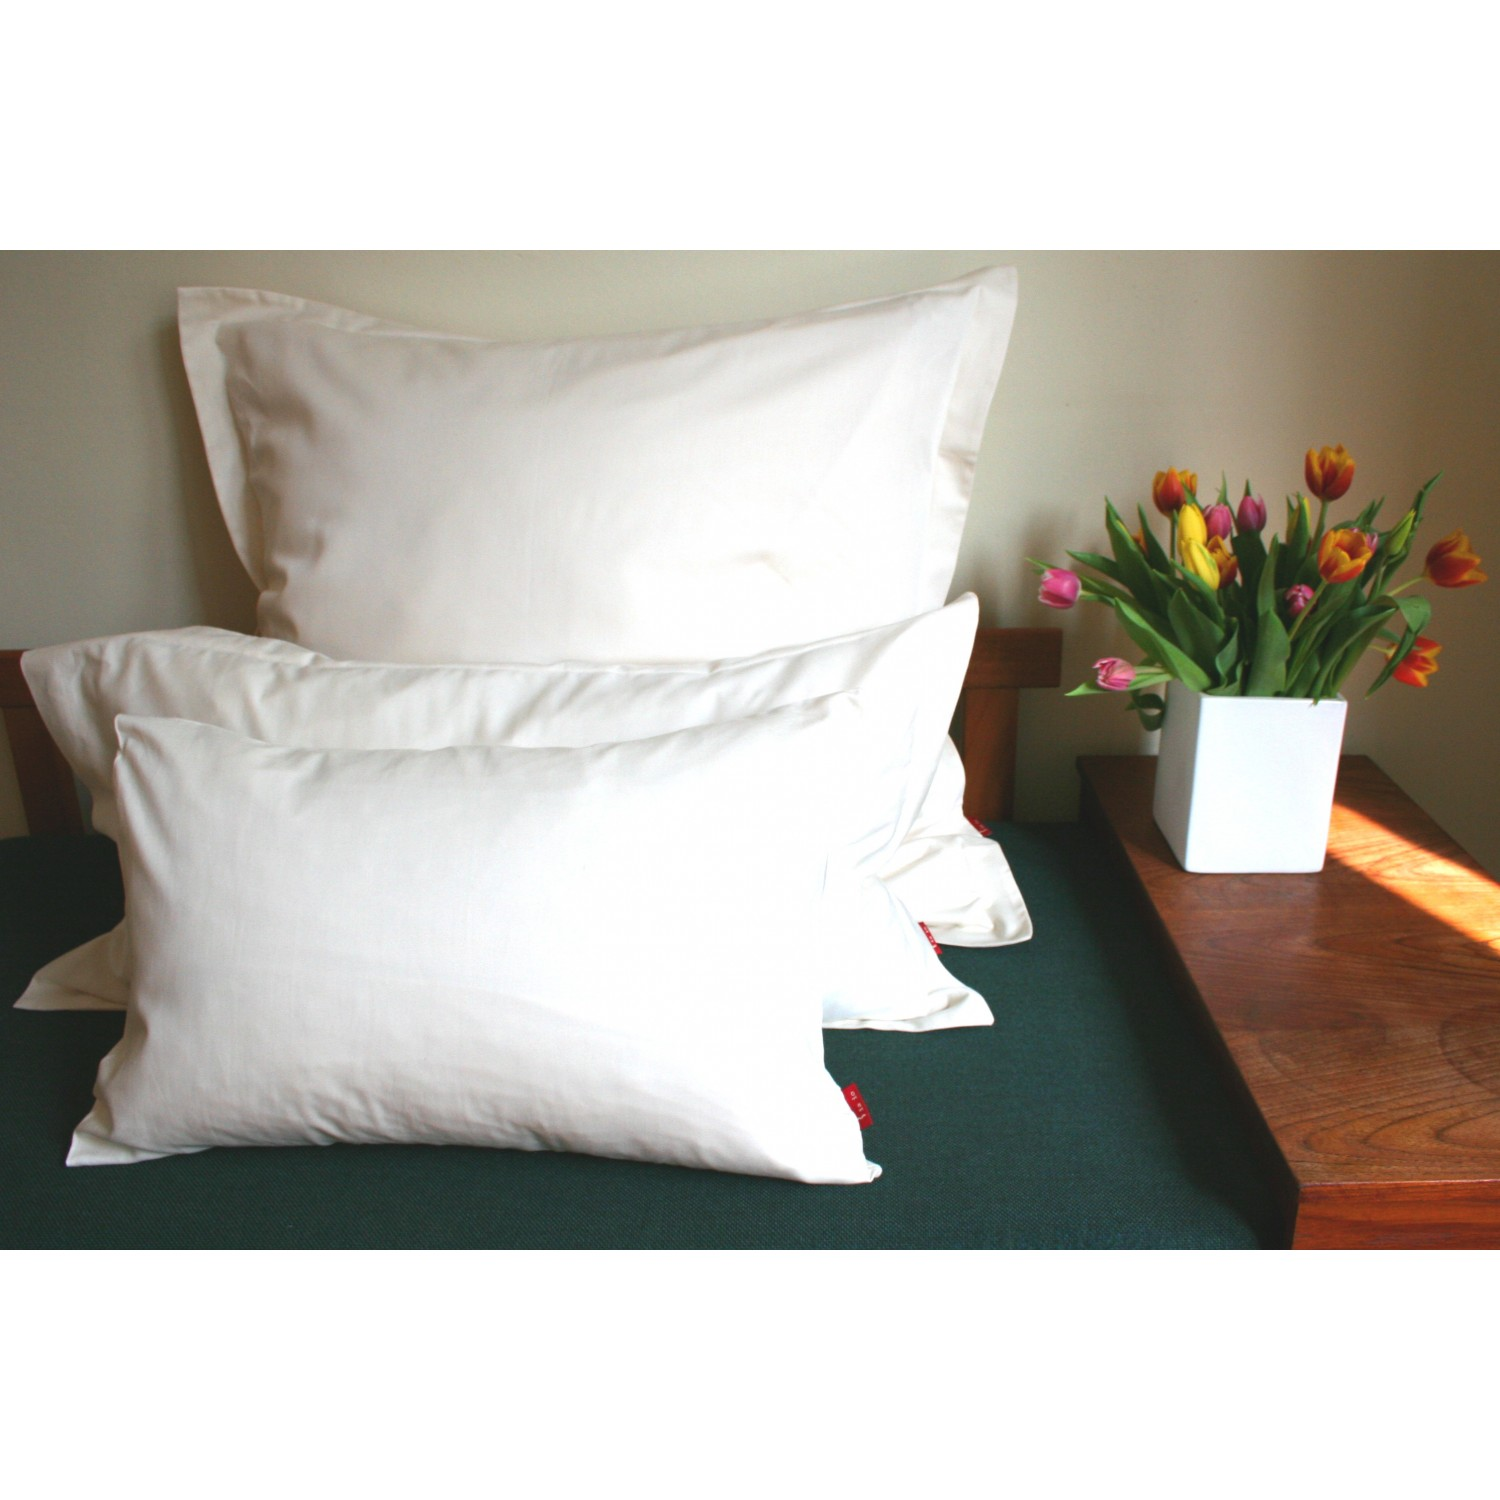 Luxurious Pillowcase of organic cotton Satin Pure | iaio